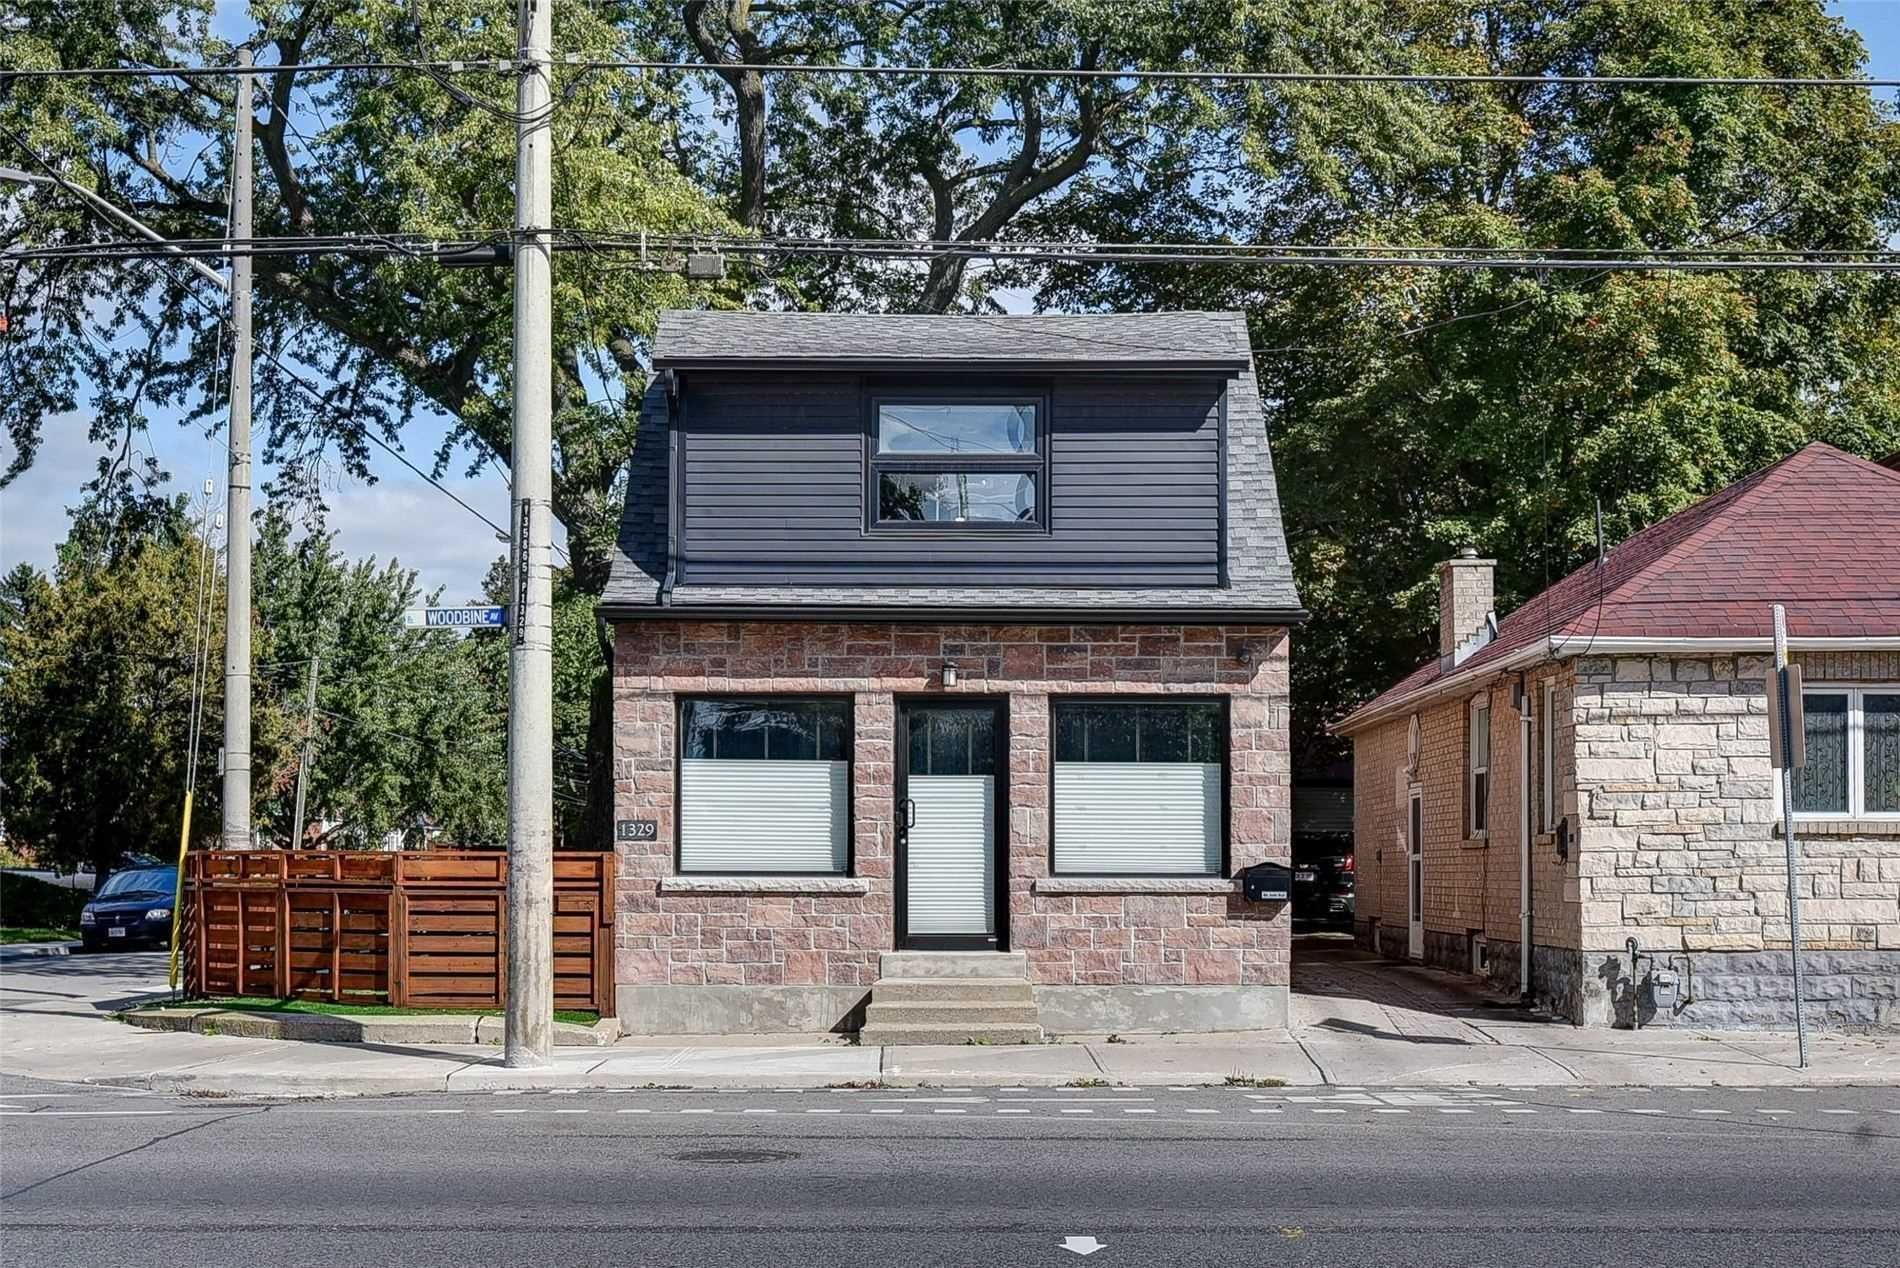 Main Photo: Bsmt 1329 Woodbine Avenue in Toronto: Danforth Village-East York House (2-Storey) for lease (Toronto E03)  : MLS®# E4654592